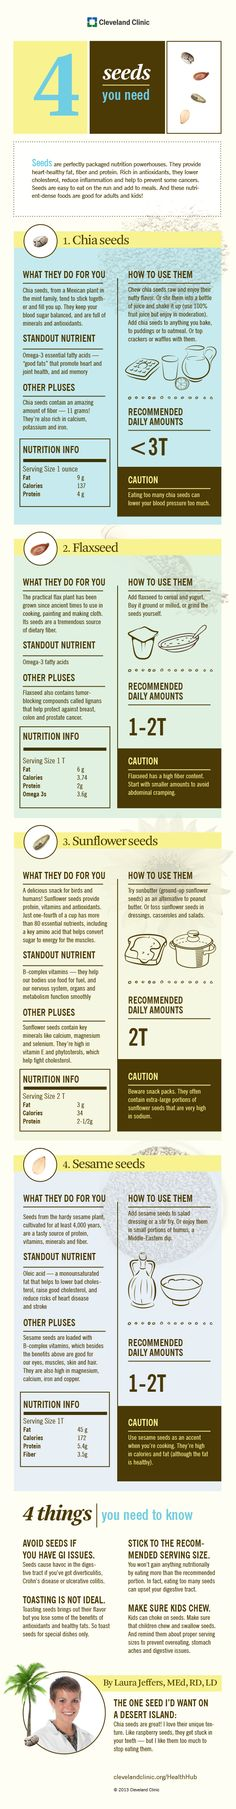 The 4 types of #seeds you need and can eat to keep you #healthy.